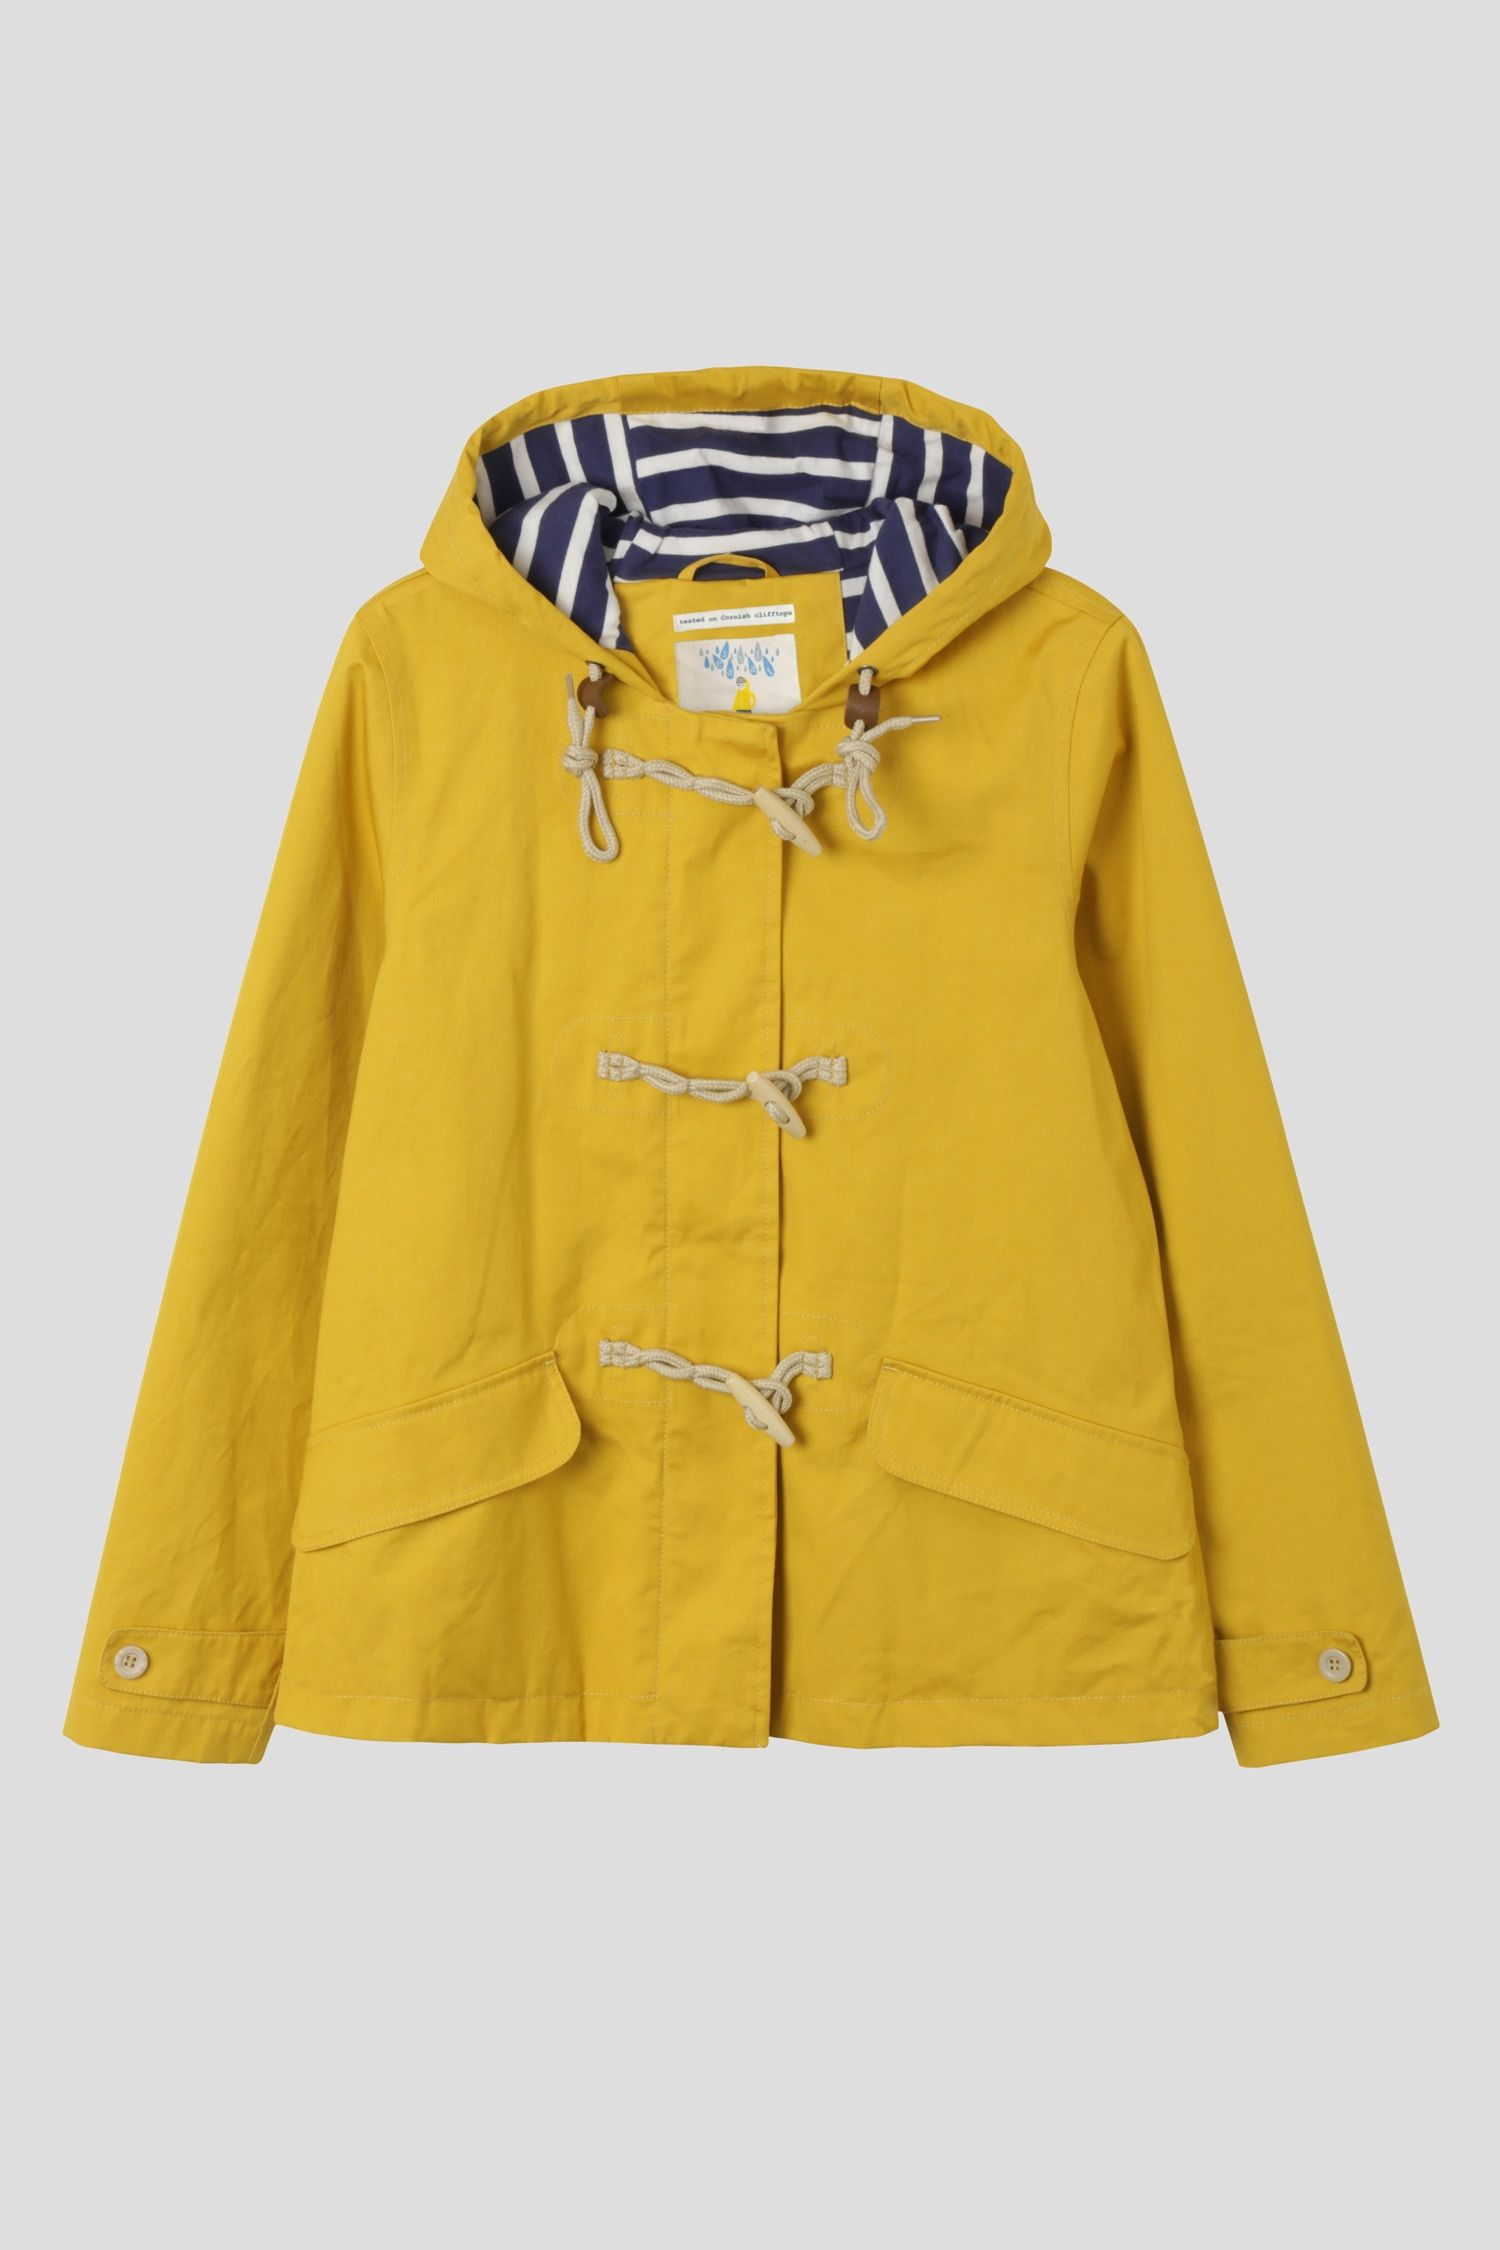 Classic nautical styling for rainy days. | Clothing and ...